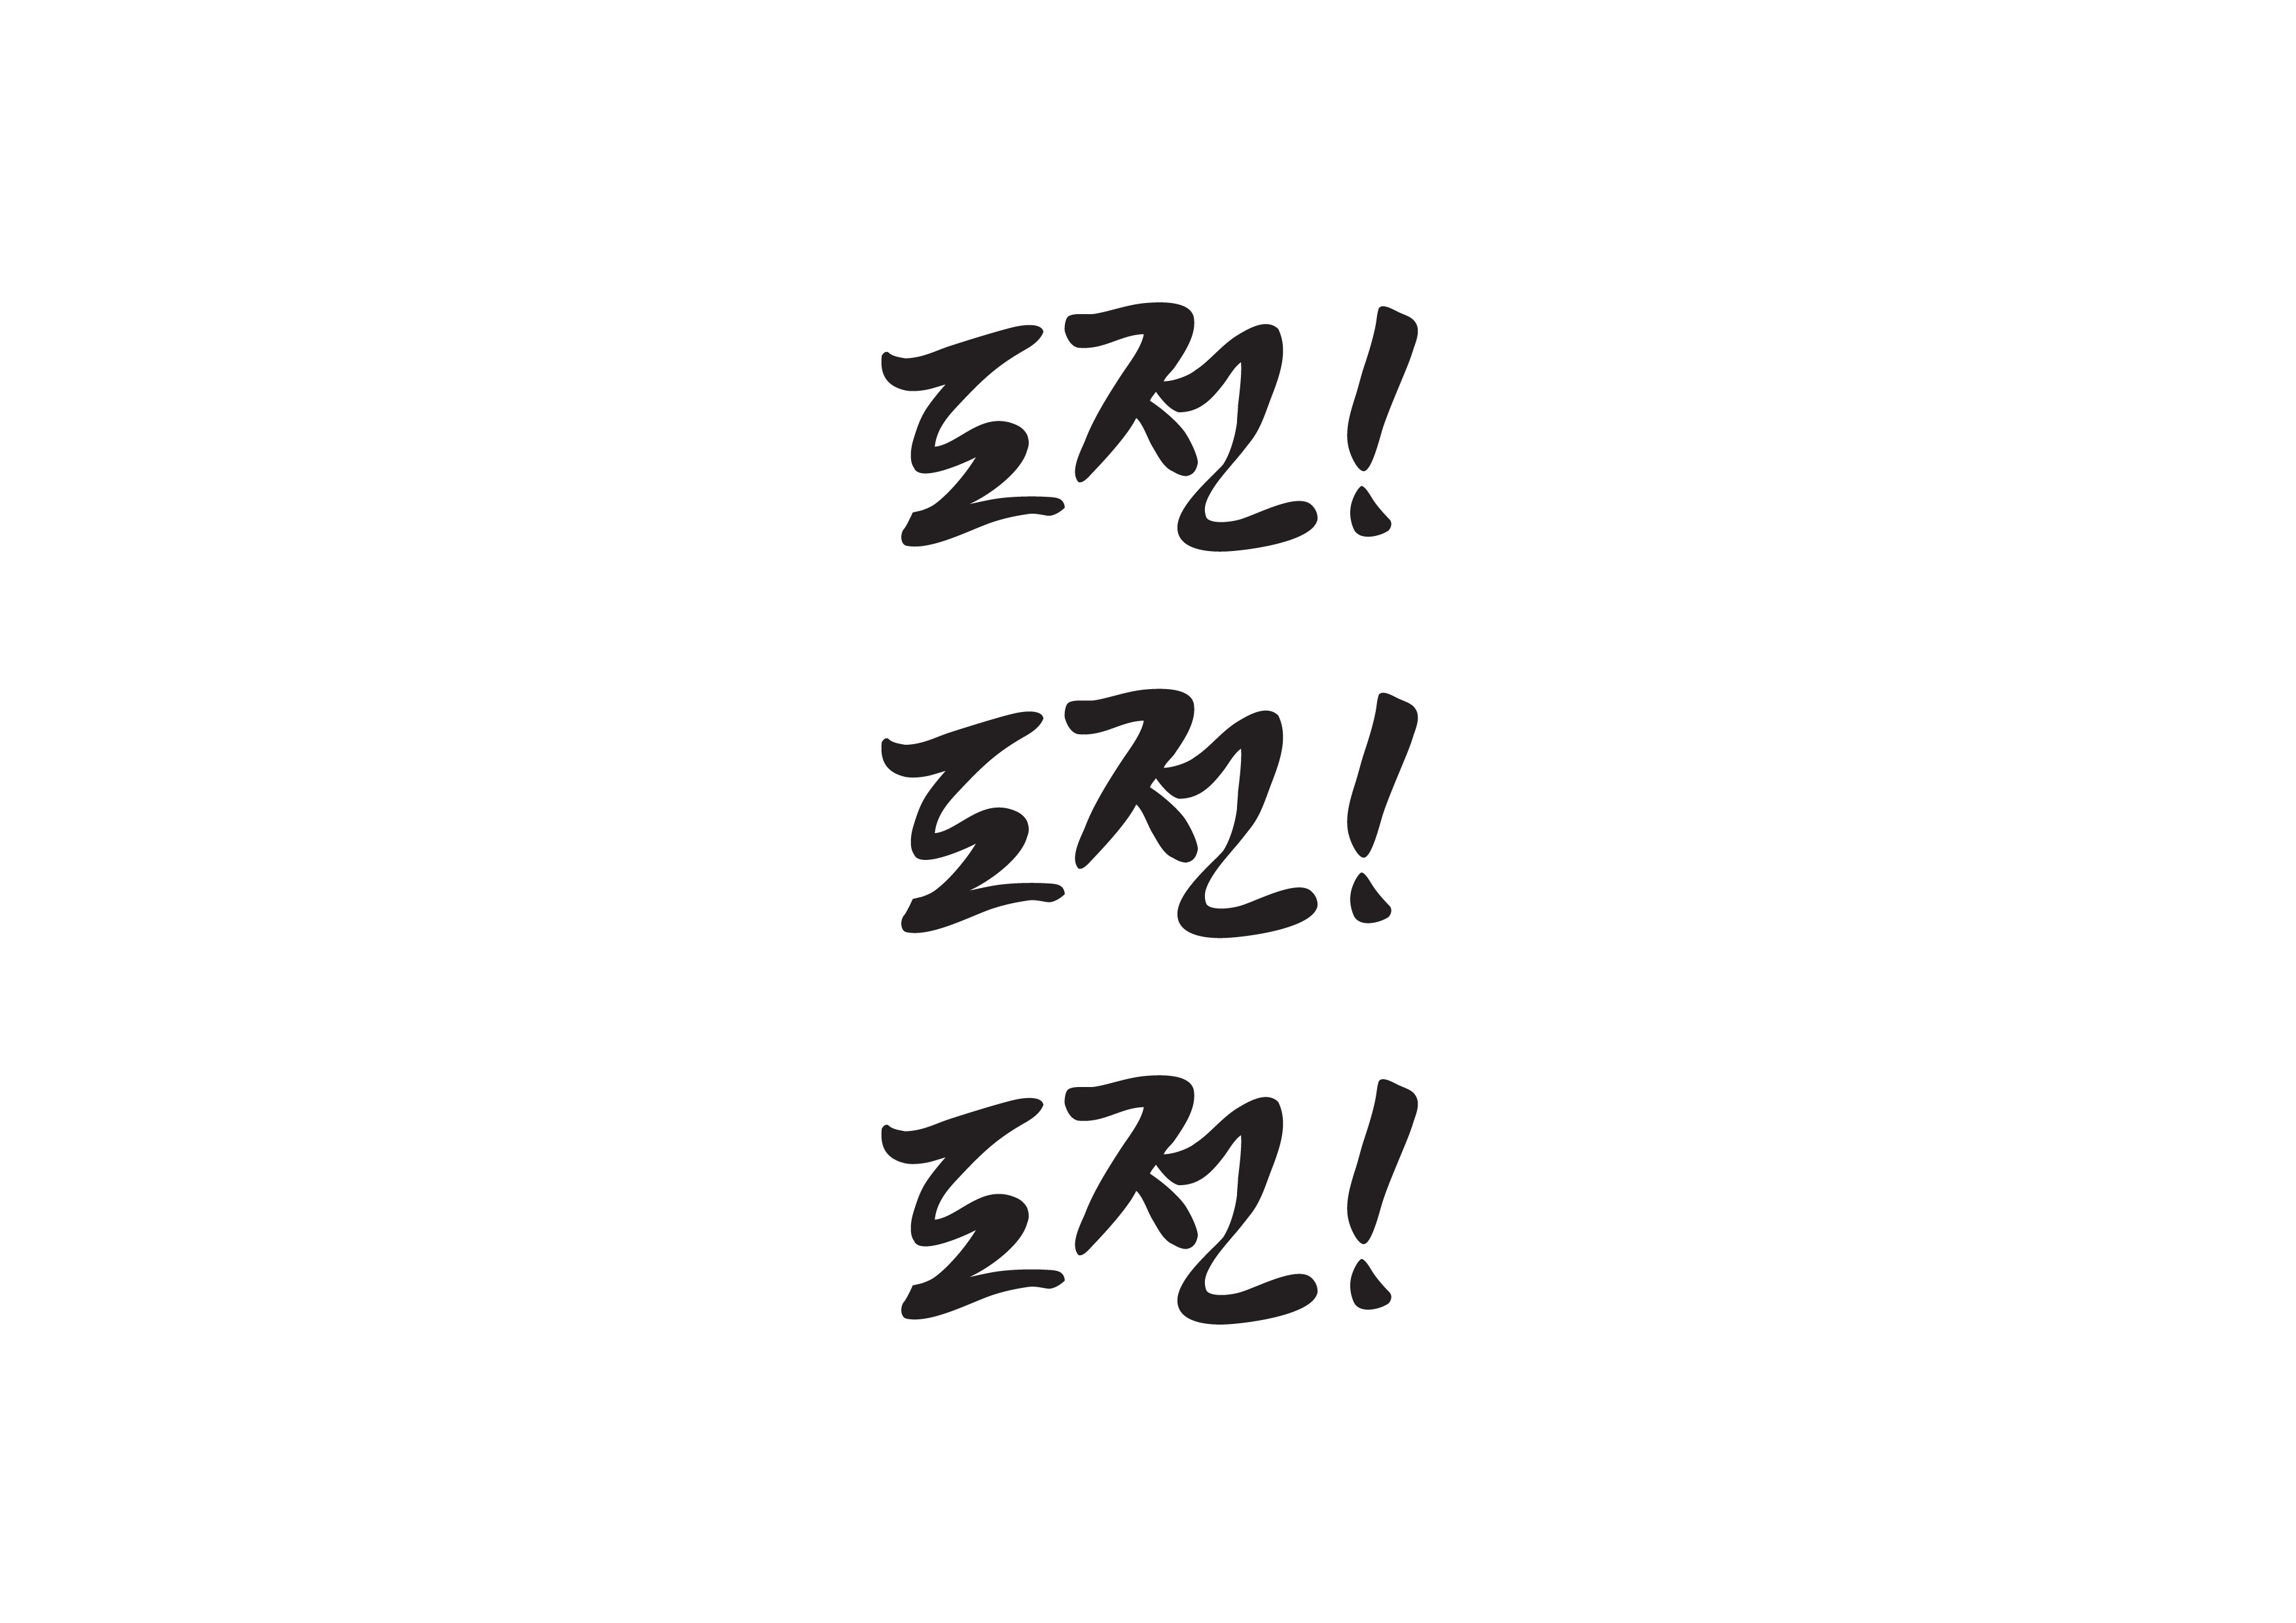 도전! 도전! 도전!